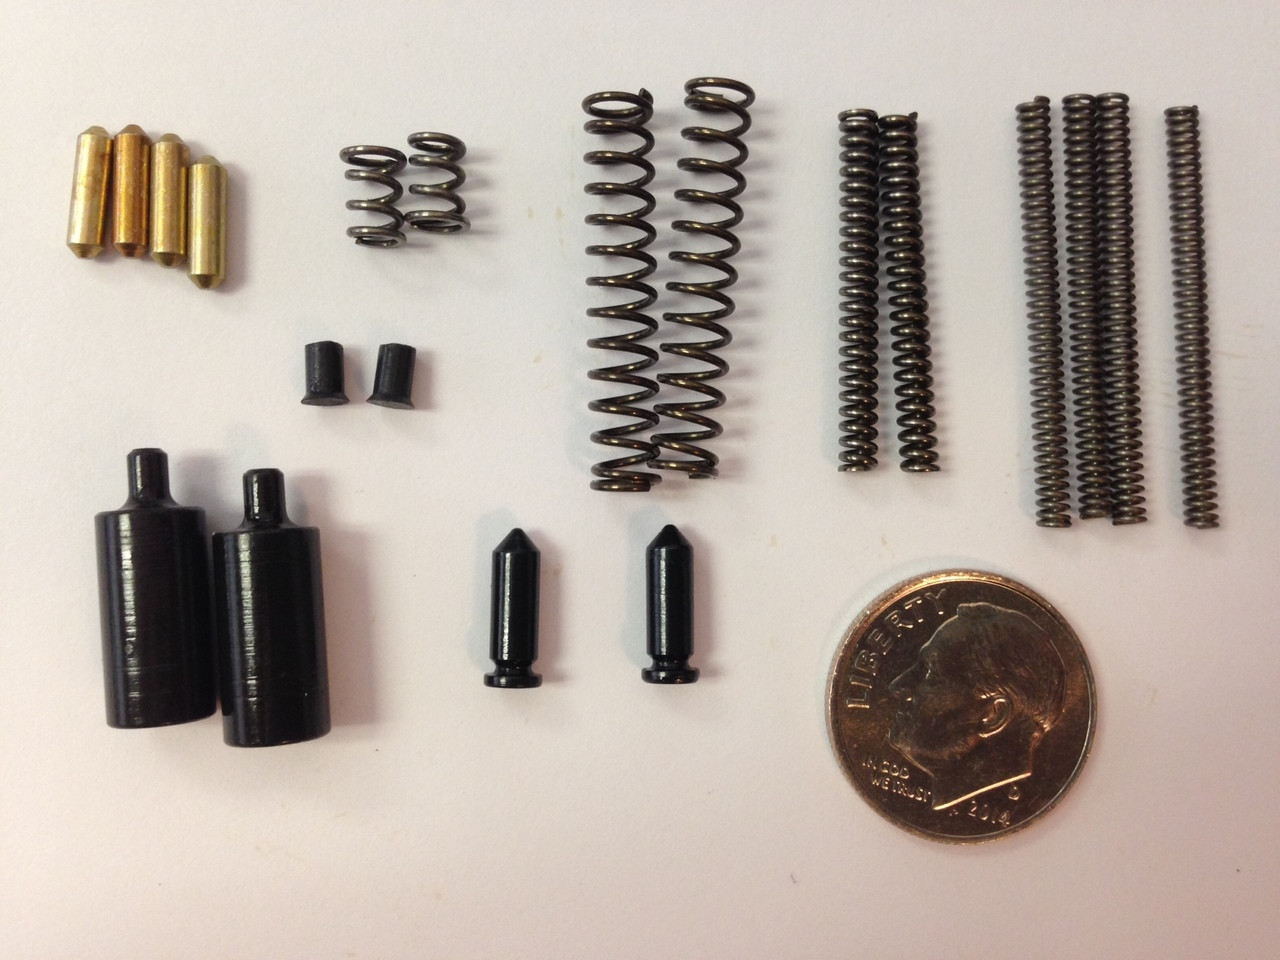 Stag Arms Lost Parts Kit